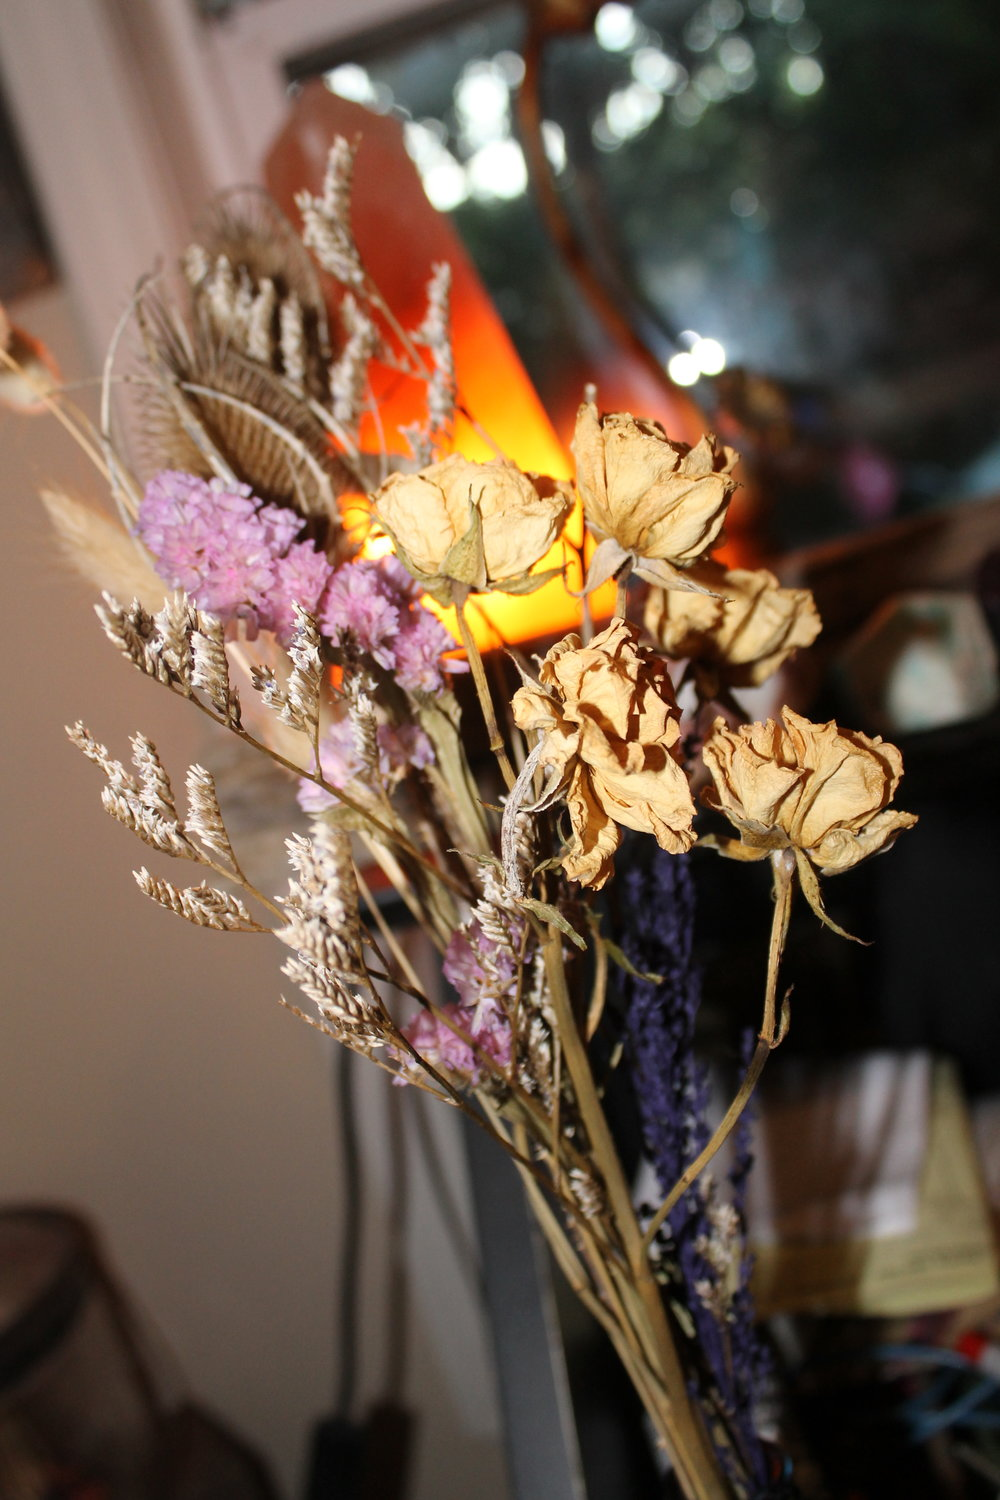 One of maybe 30 dried floral bouquets in the house. It's a small obsession.